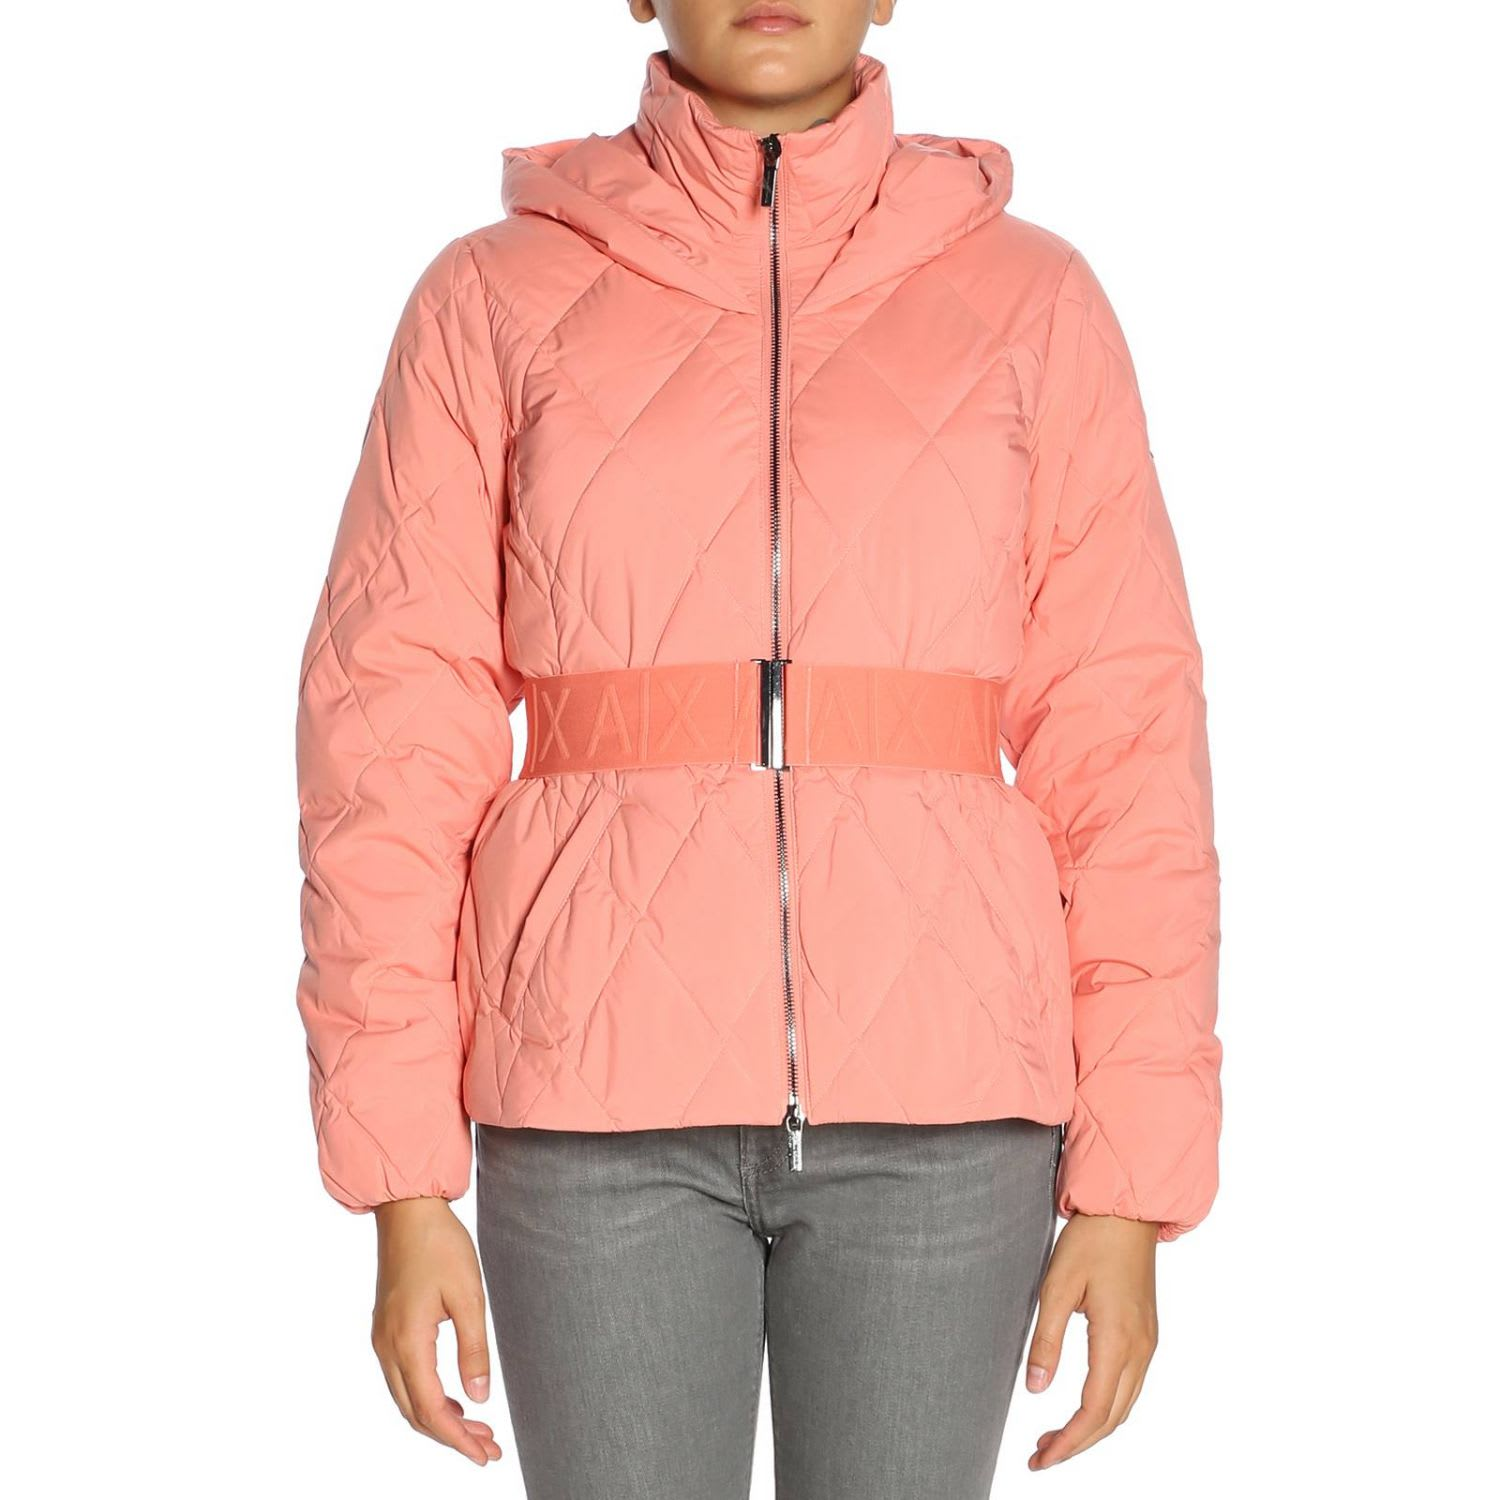 Armani Exchange Jacket Jacket Women Armani Exchange